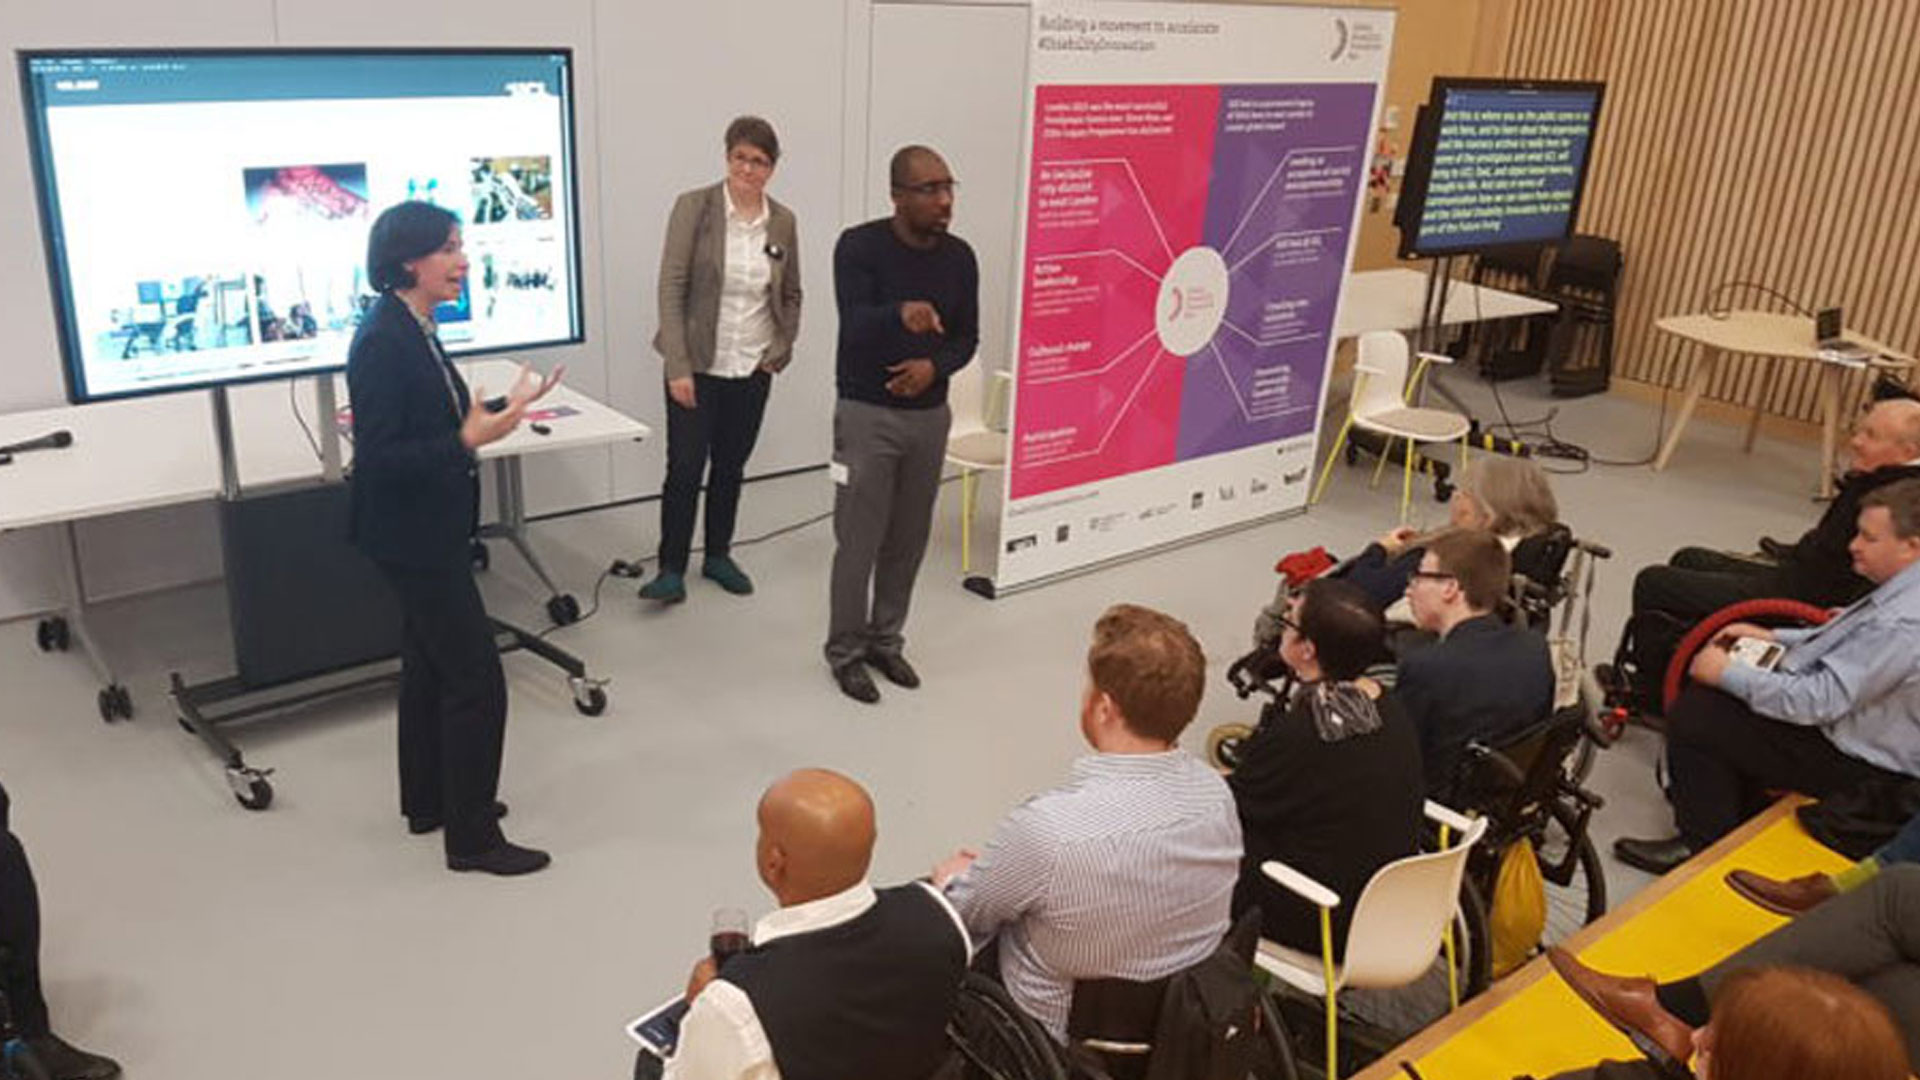 Introducing: MSc Disability, Design and Innovation